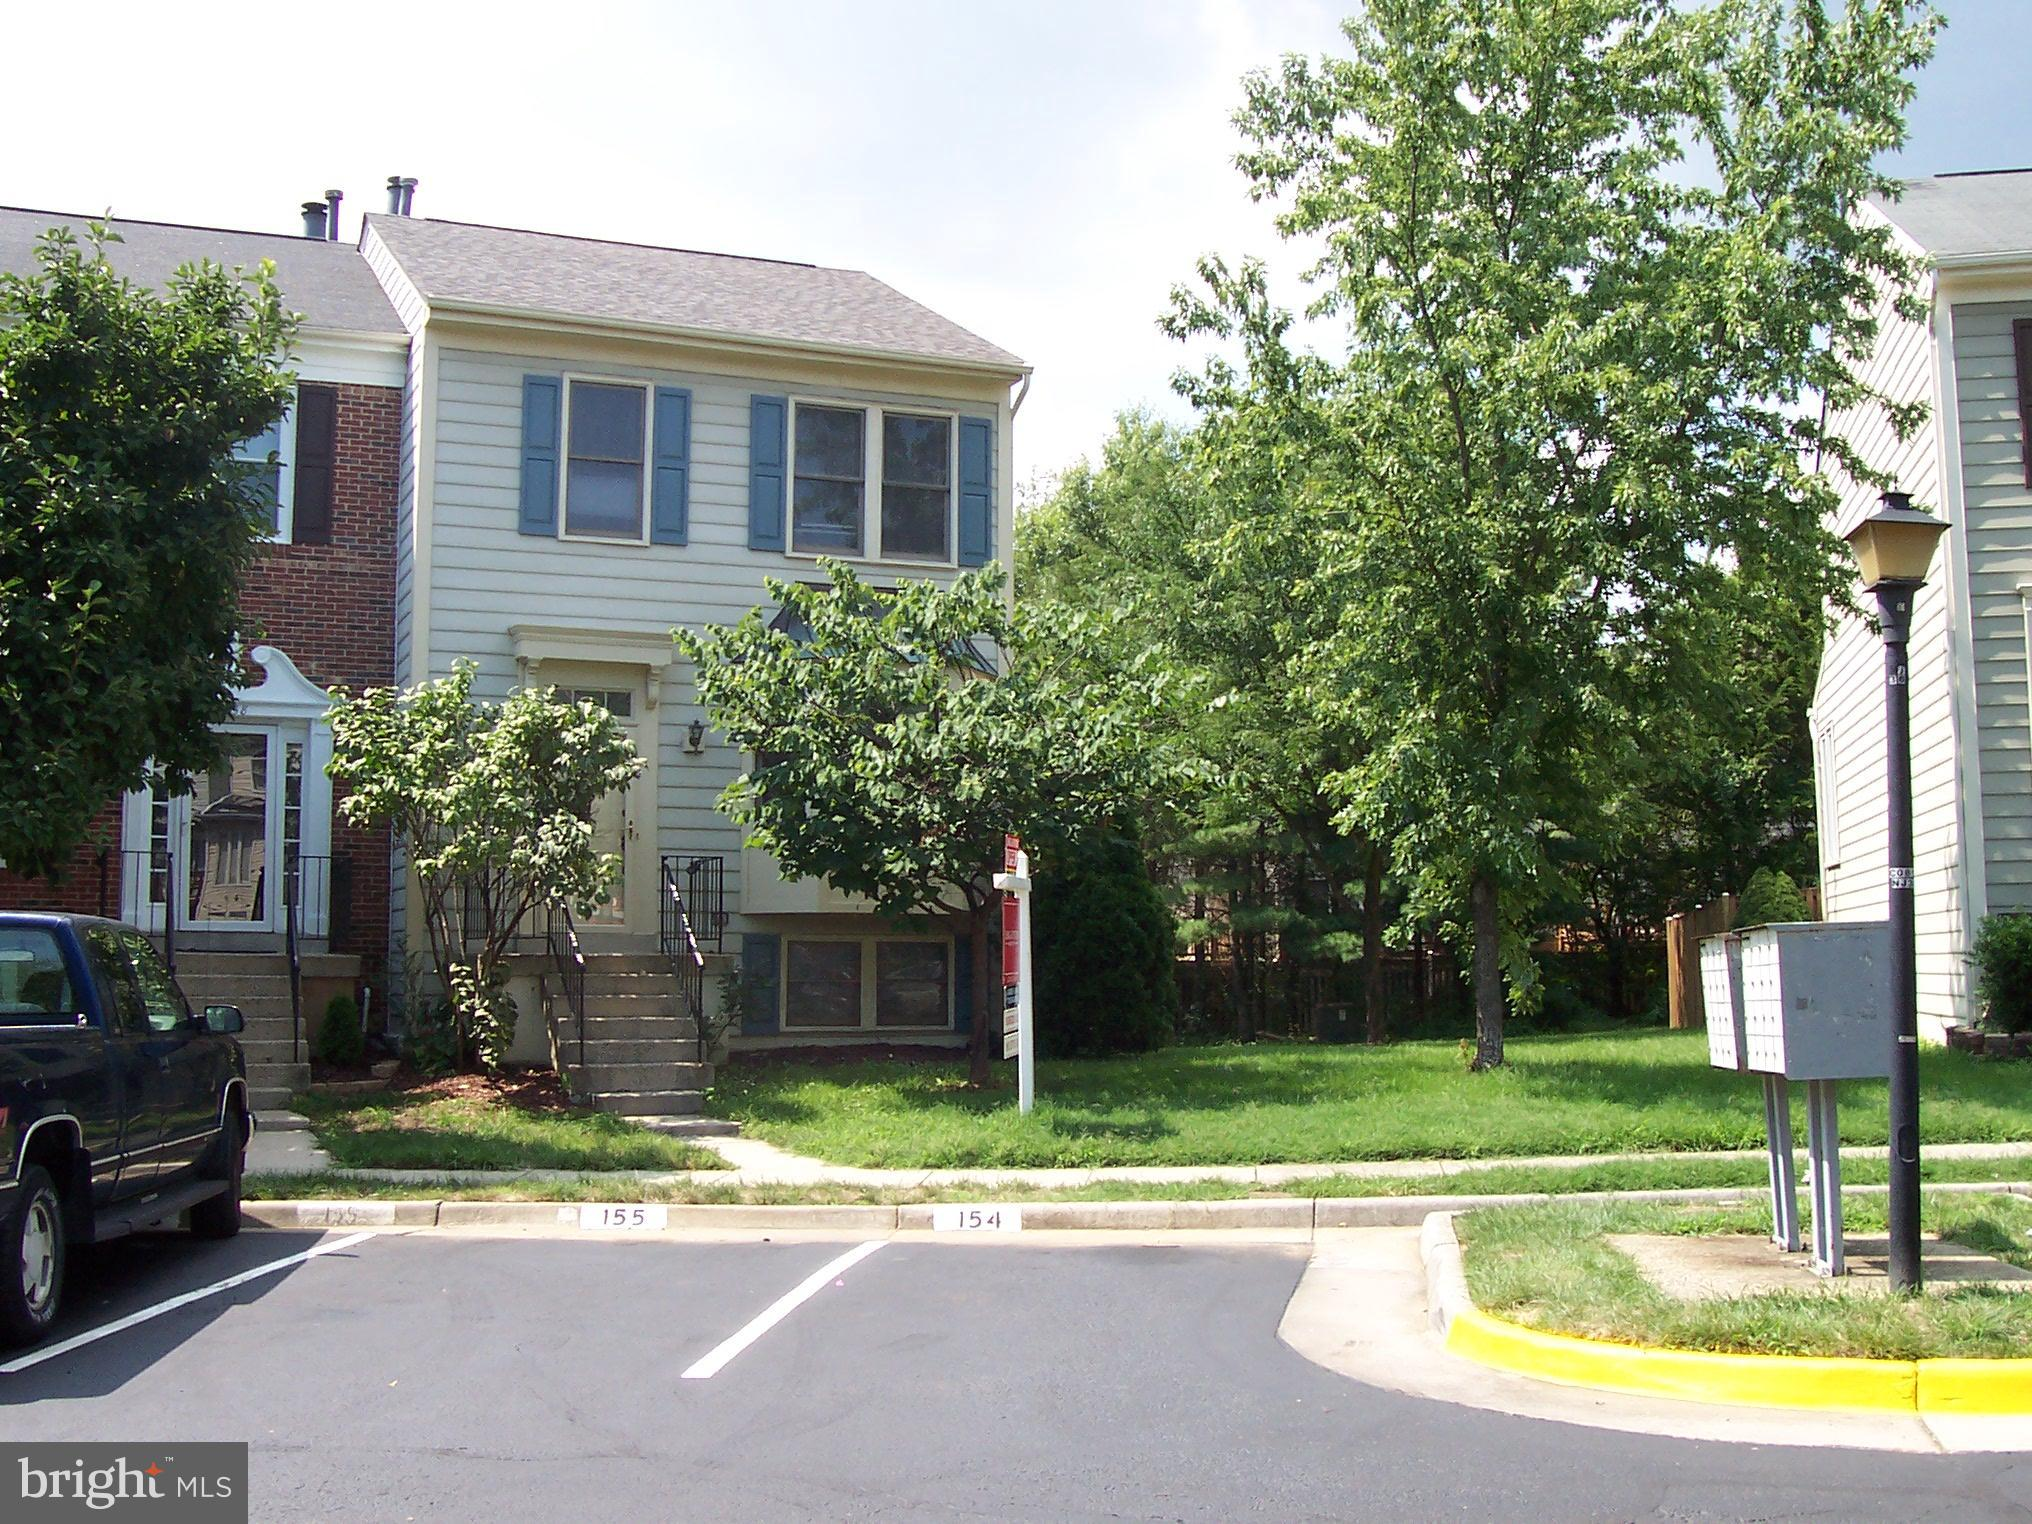 BUY QUICK BEFORE AMAZON ARRIVES. LIMITED INVENTORY IN KINGSTOWNE.  Nice 3 level, 3 BR , 3 1/2 Bath Lowest priced  townhouse in Kingstowne. Updated, Granite Counters,Skylights. New Roof, Hot Water Heater and Washer in 2018.Two level deck, Lower level has full bath &  Rec Room With Fireplace. Walk out to lower level deck. Easy access to Springfield Metro, I-395 FFX Co Pky & Pentagon.